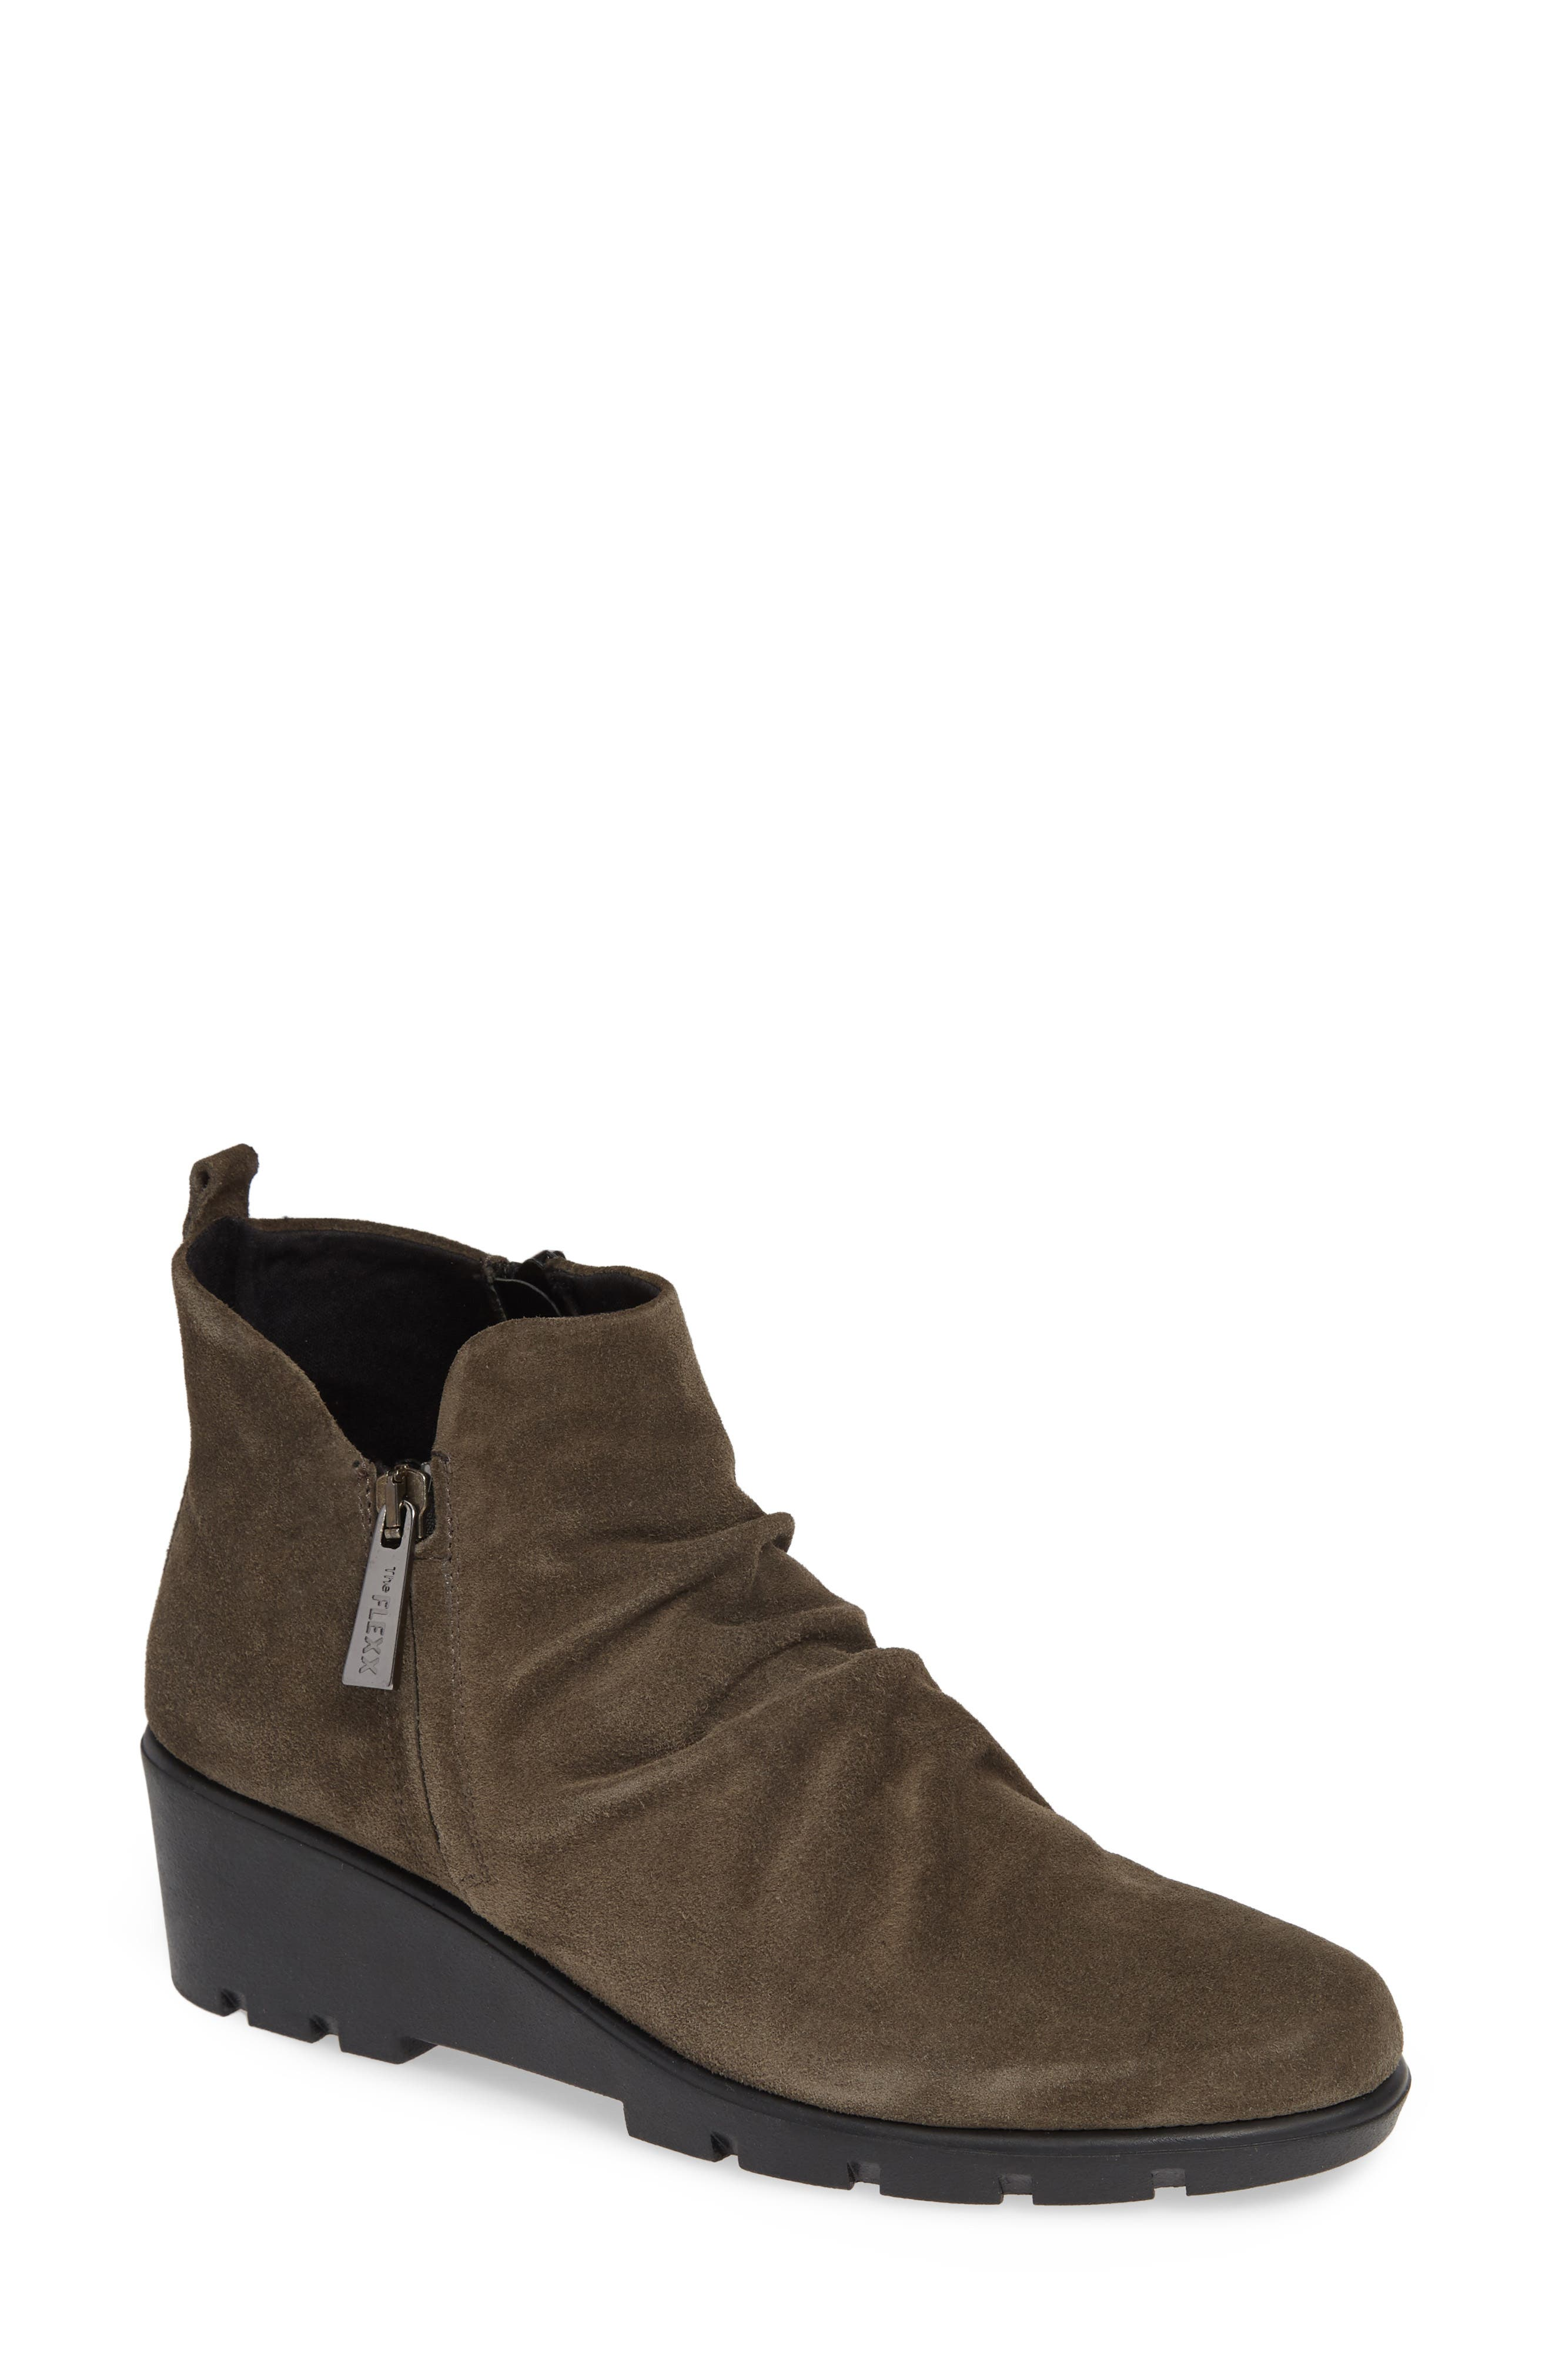 Slingshot Ankle Bootie,                             Main thumbnail 1, color,                             BROWN SUEDE